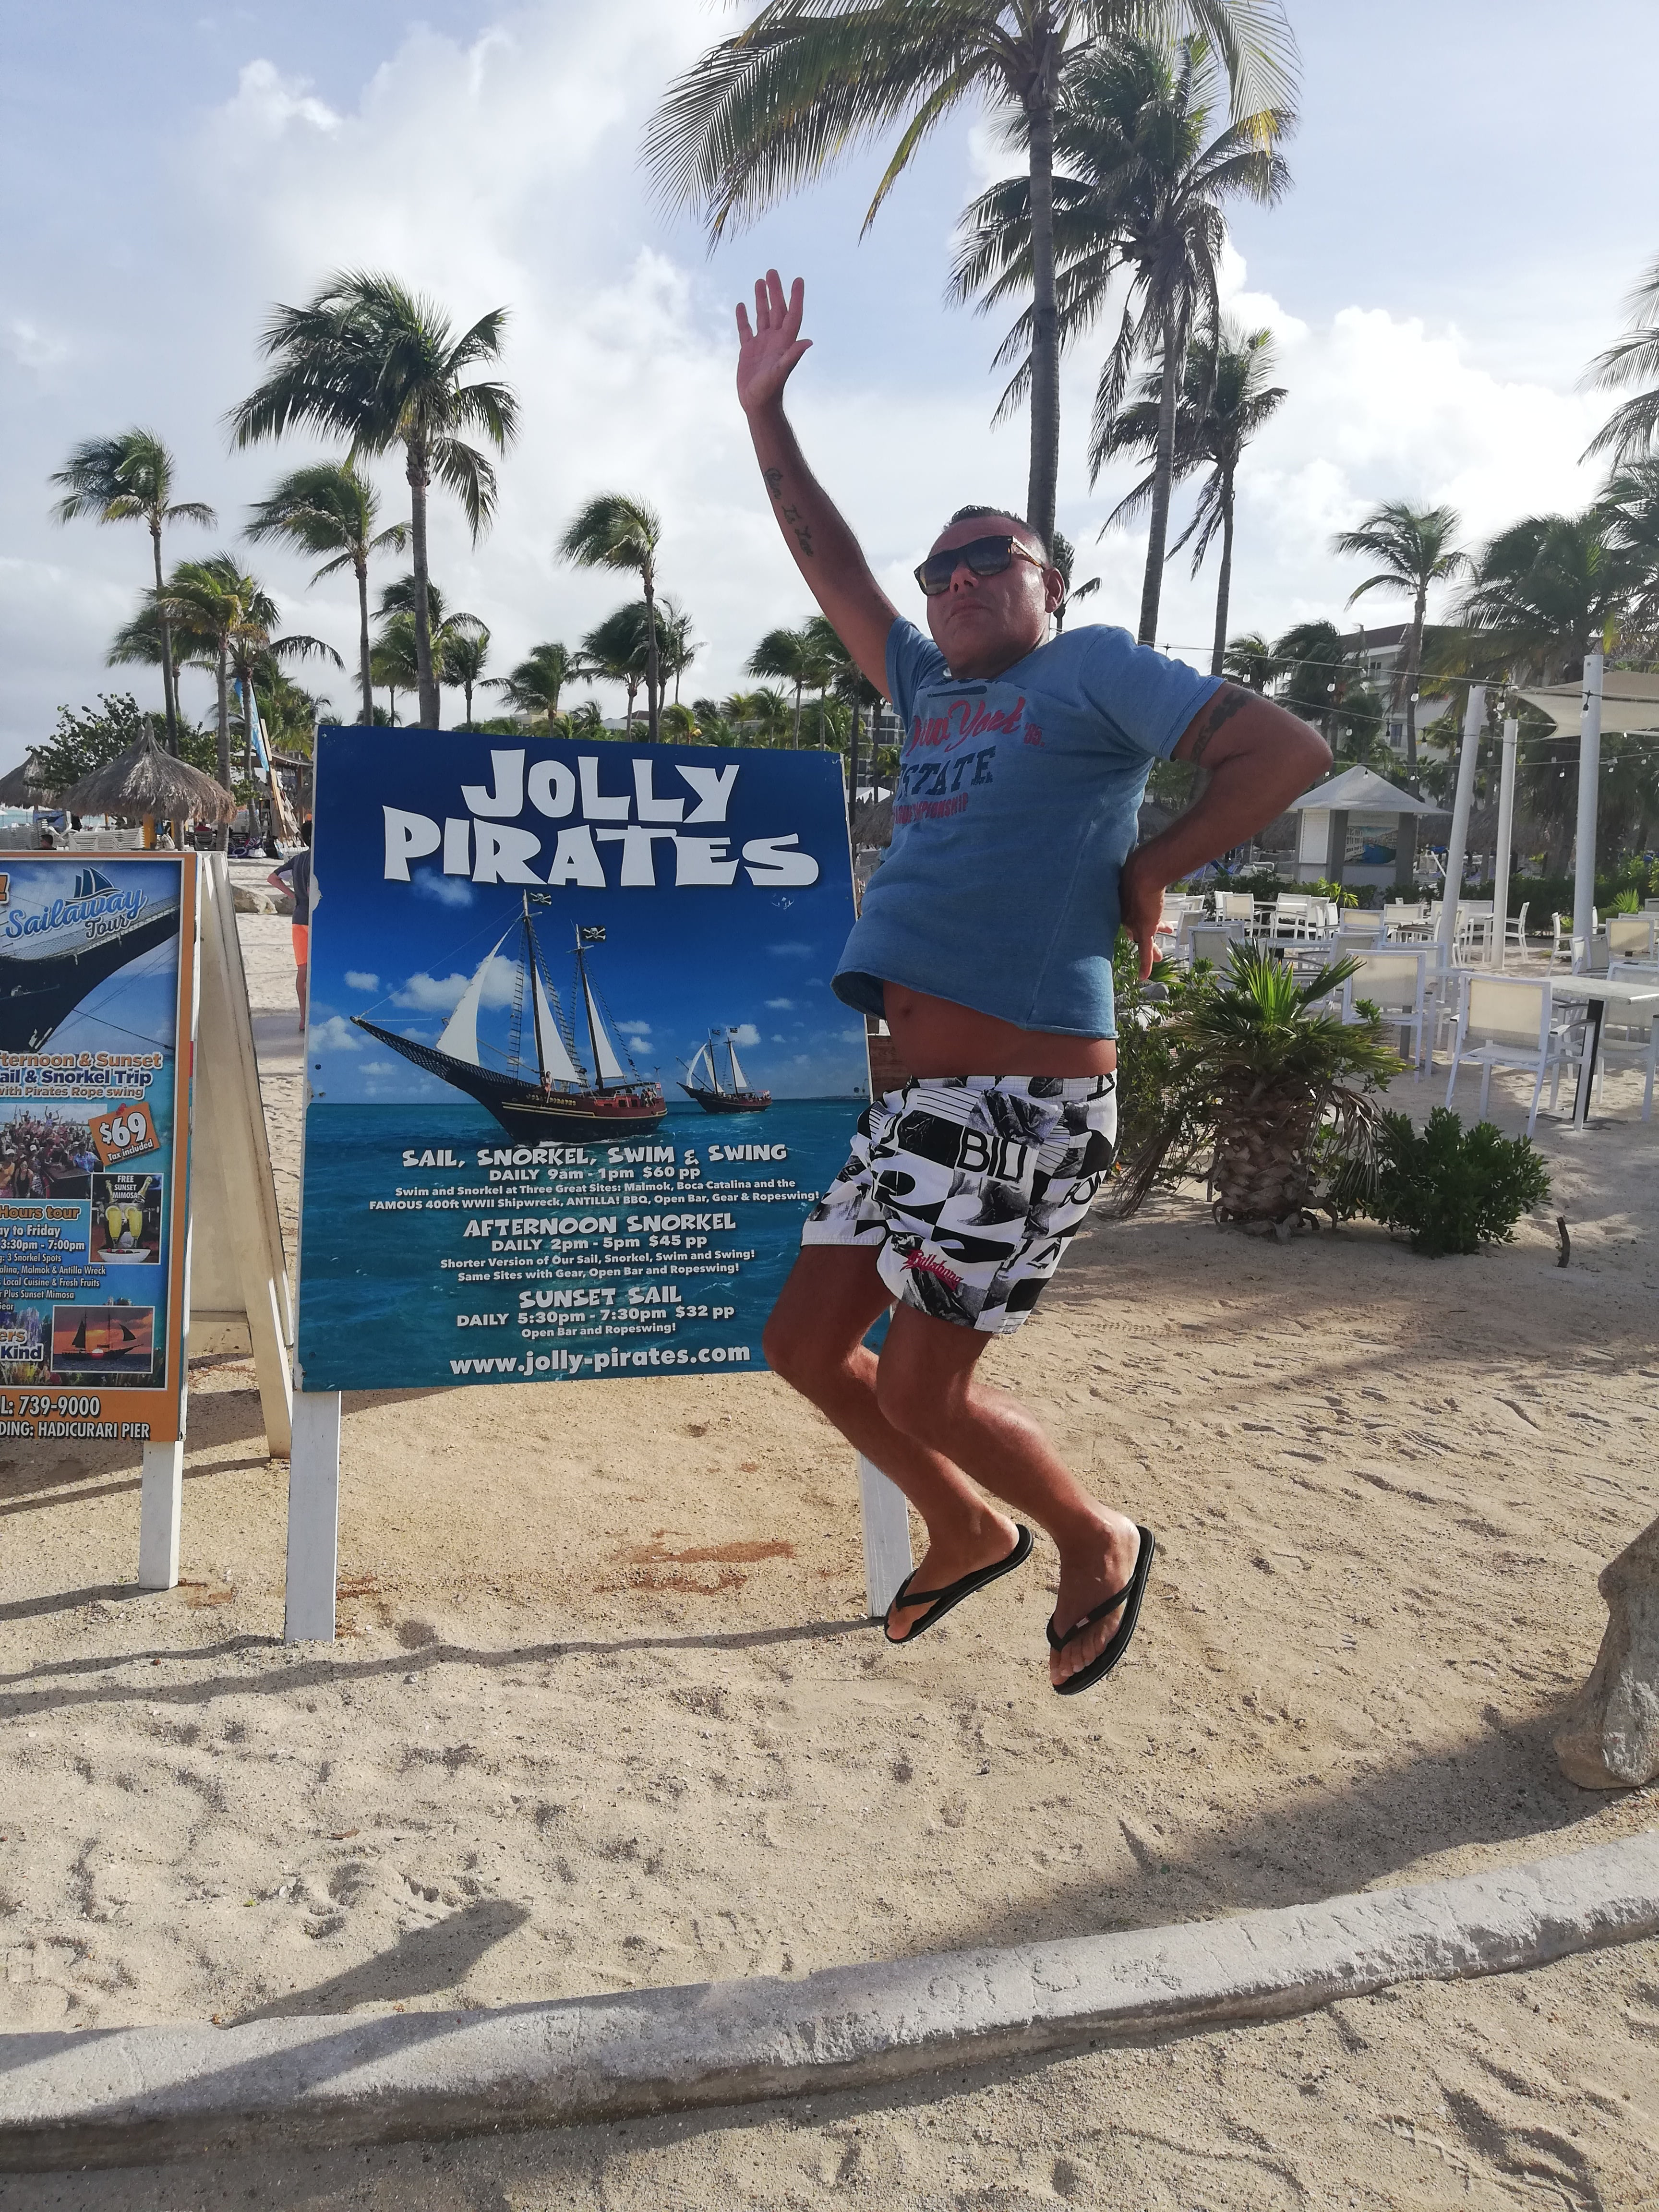 COSA FARE AD ARUBA, JOLLY PIRATES